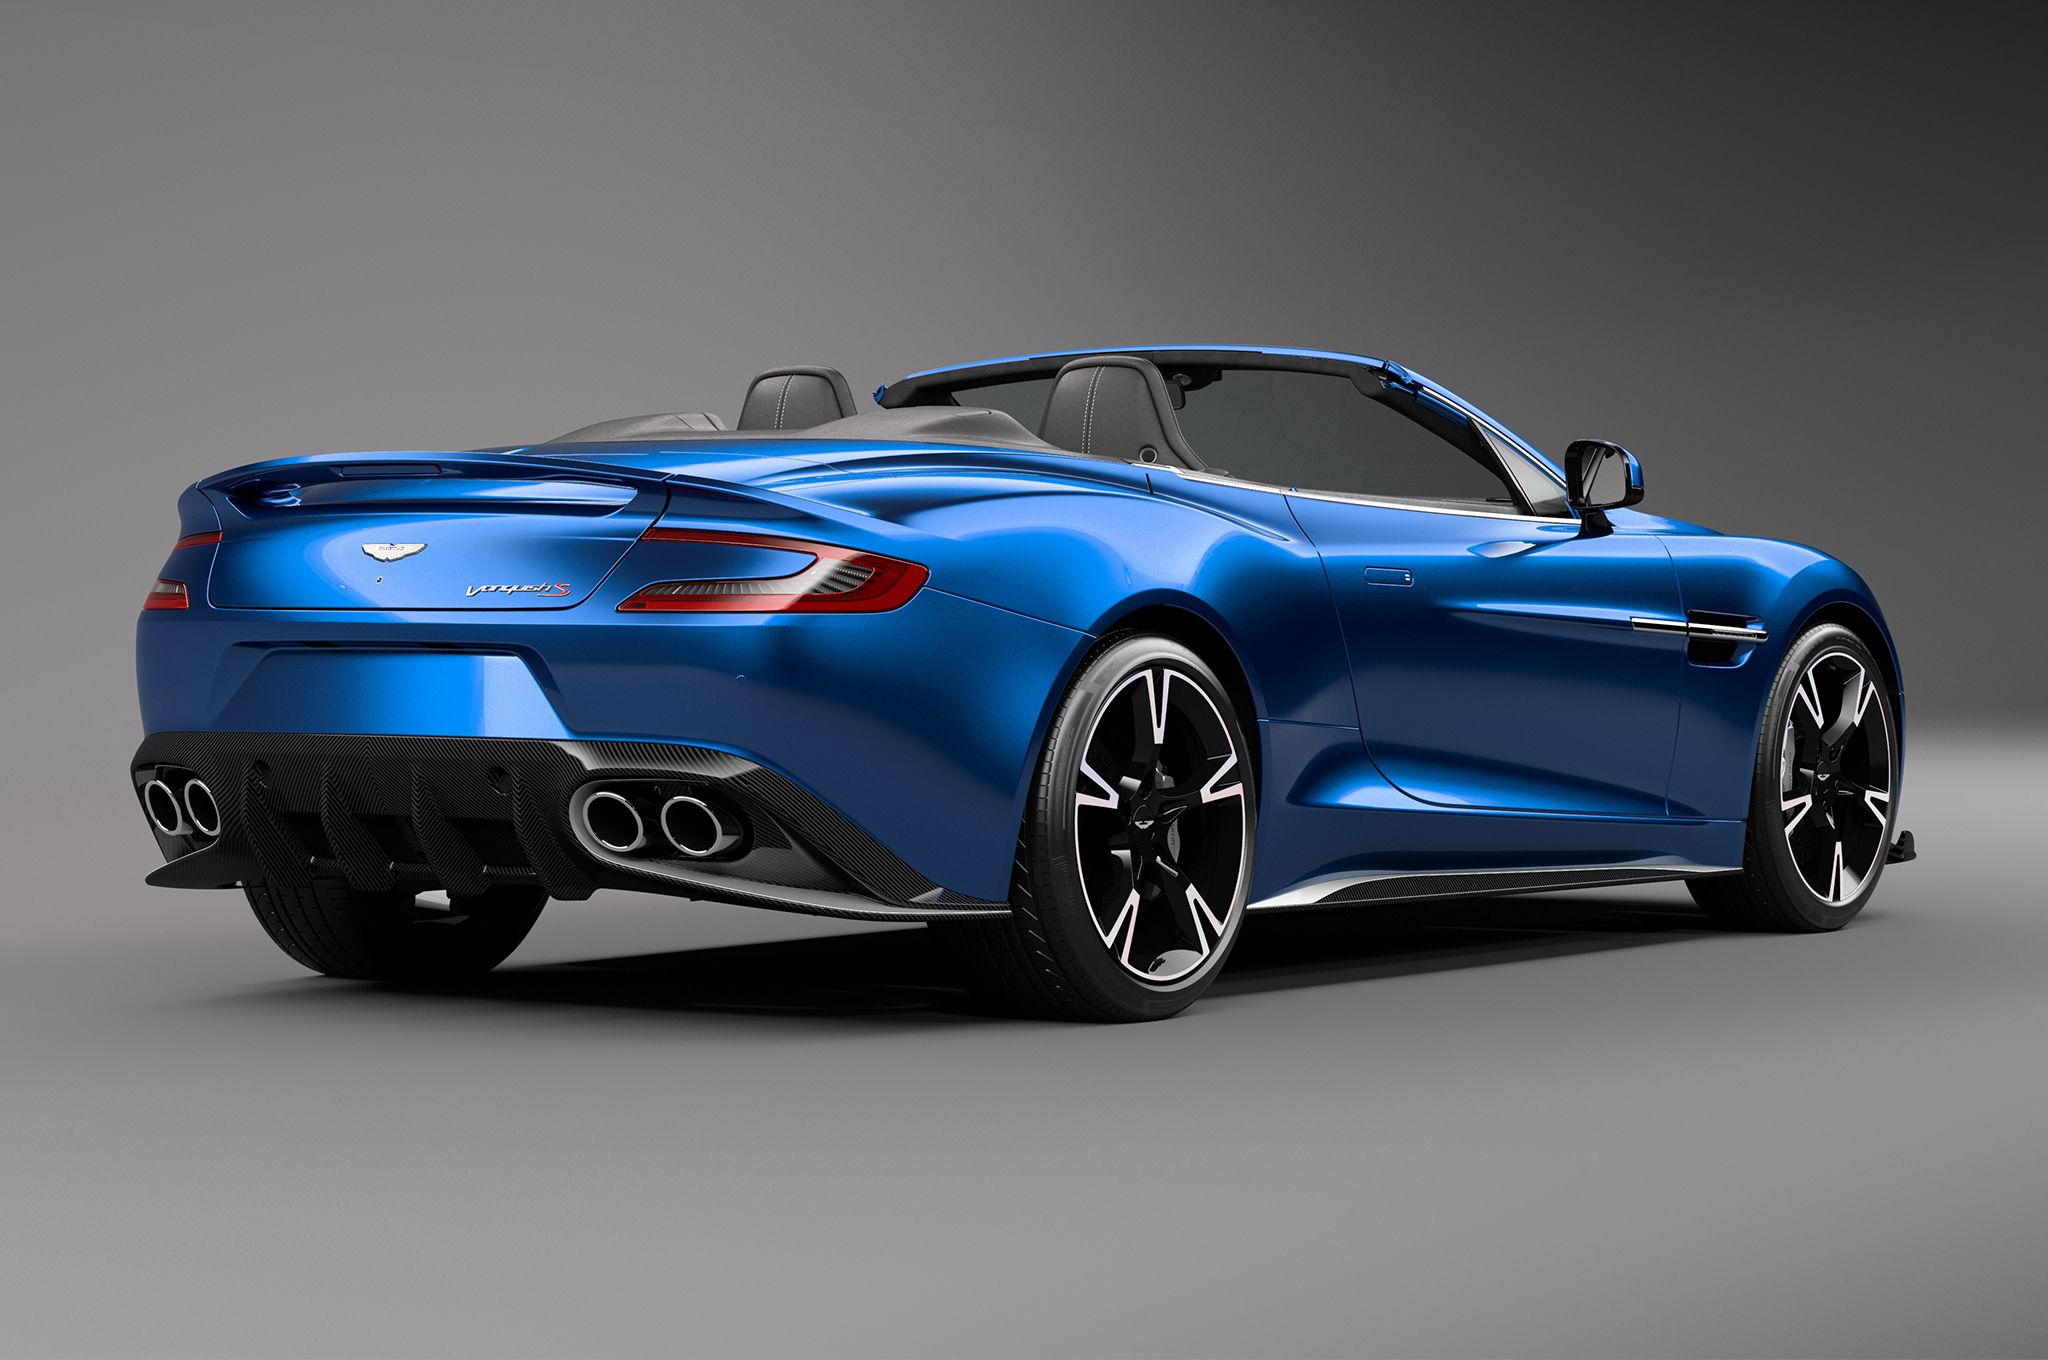 2018 Aston Martin Vanquish S Vanquish Volante rear three quarter